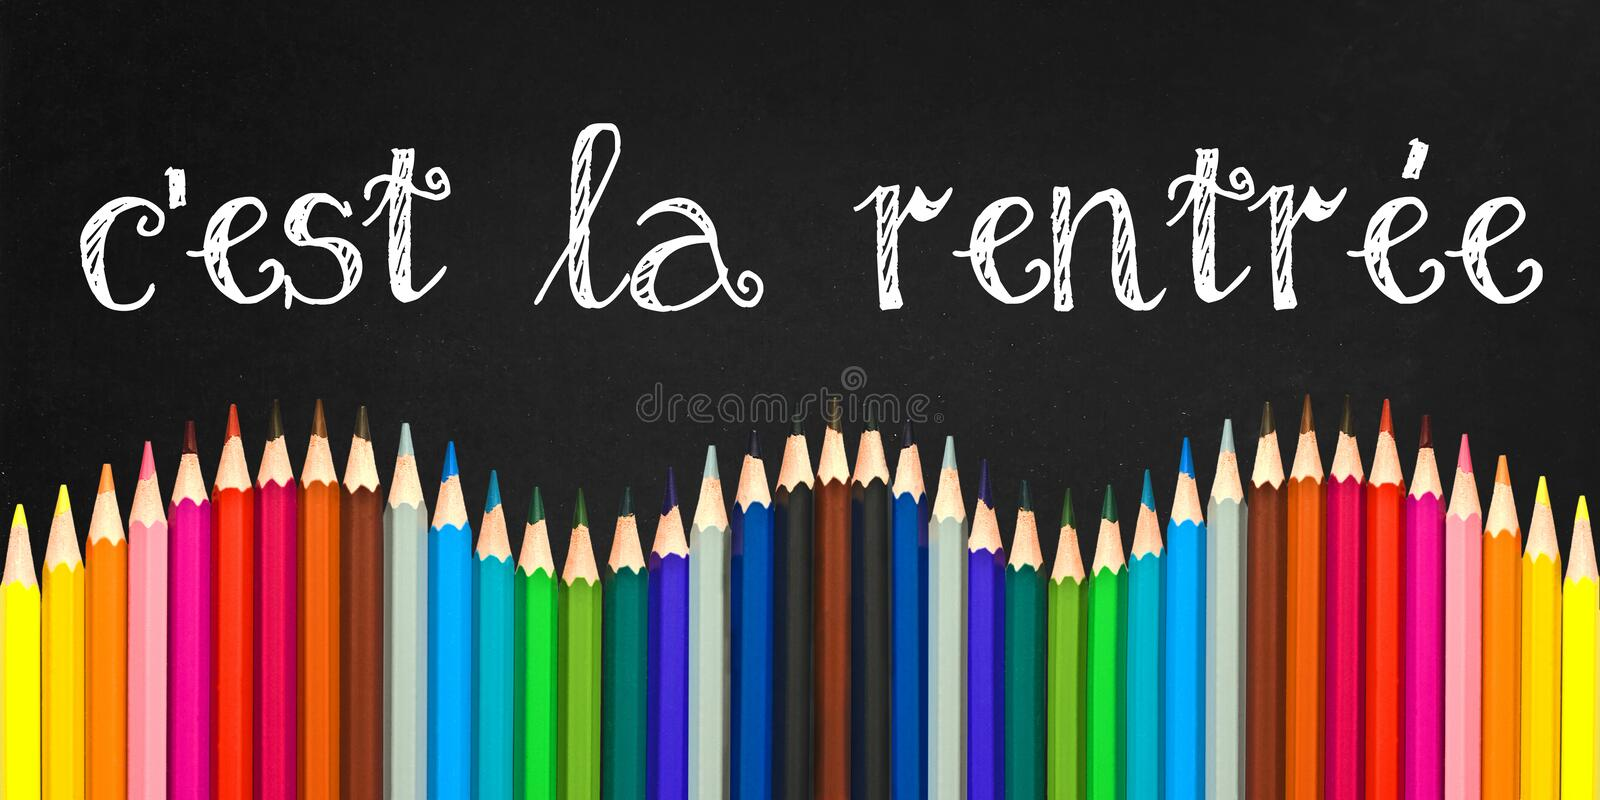 C`est la rentree meaning Back to school written on a black board background with a wave of colorful wooden pencils royalty free stock photography